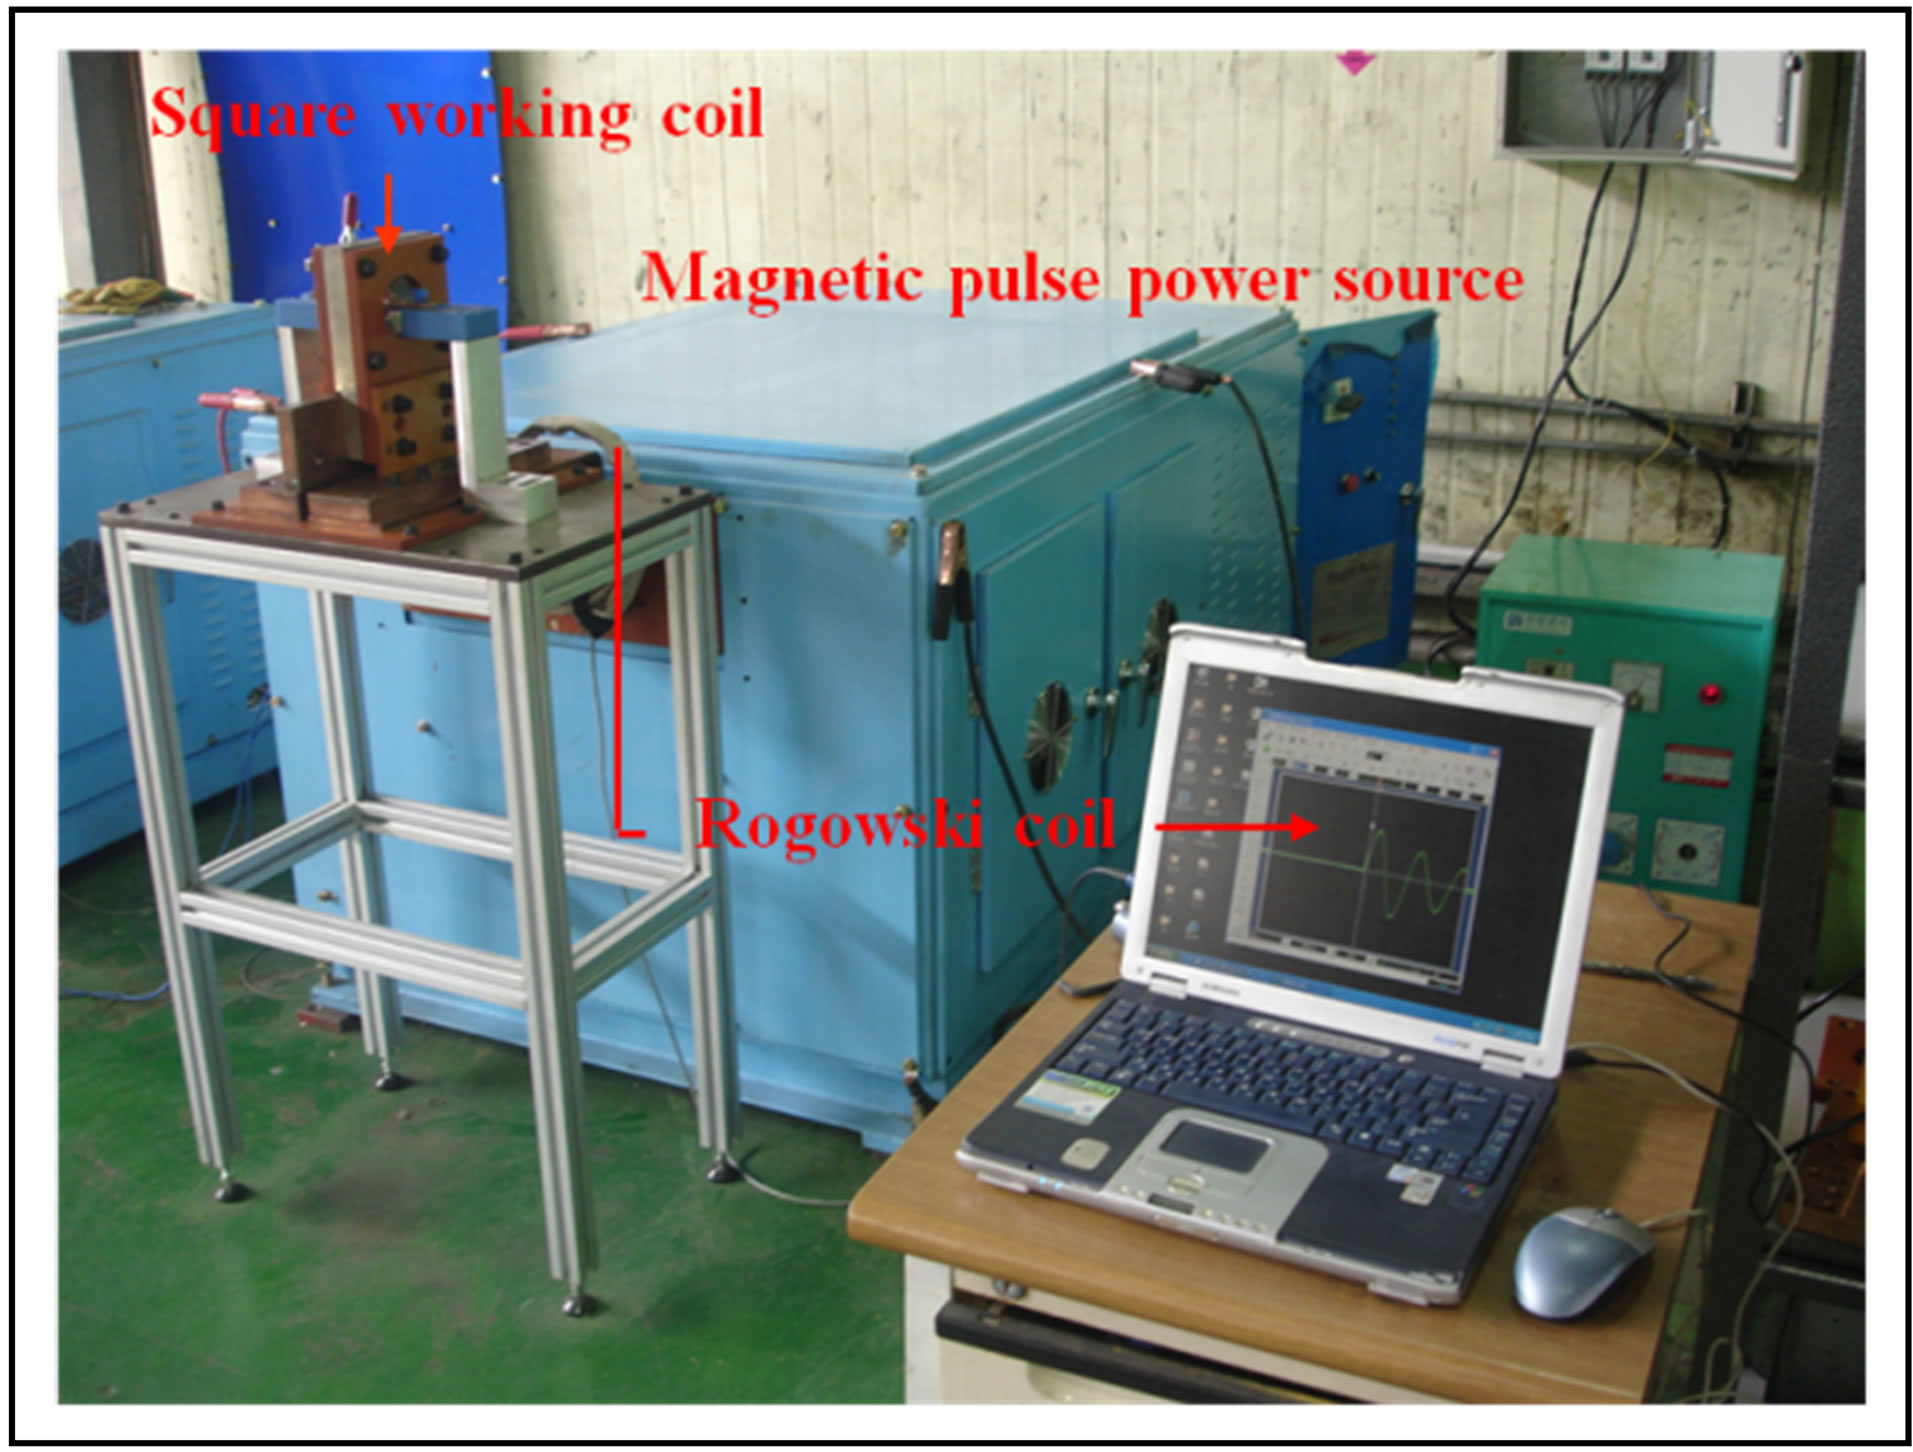 Distribution Of Electromagnetic Force Of Square Working Coil For High